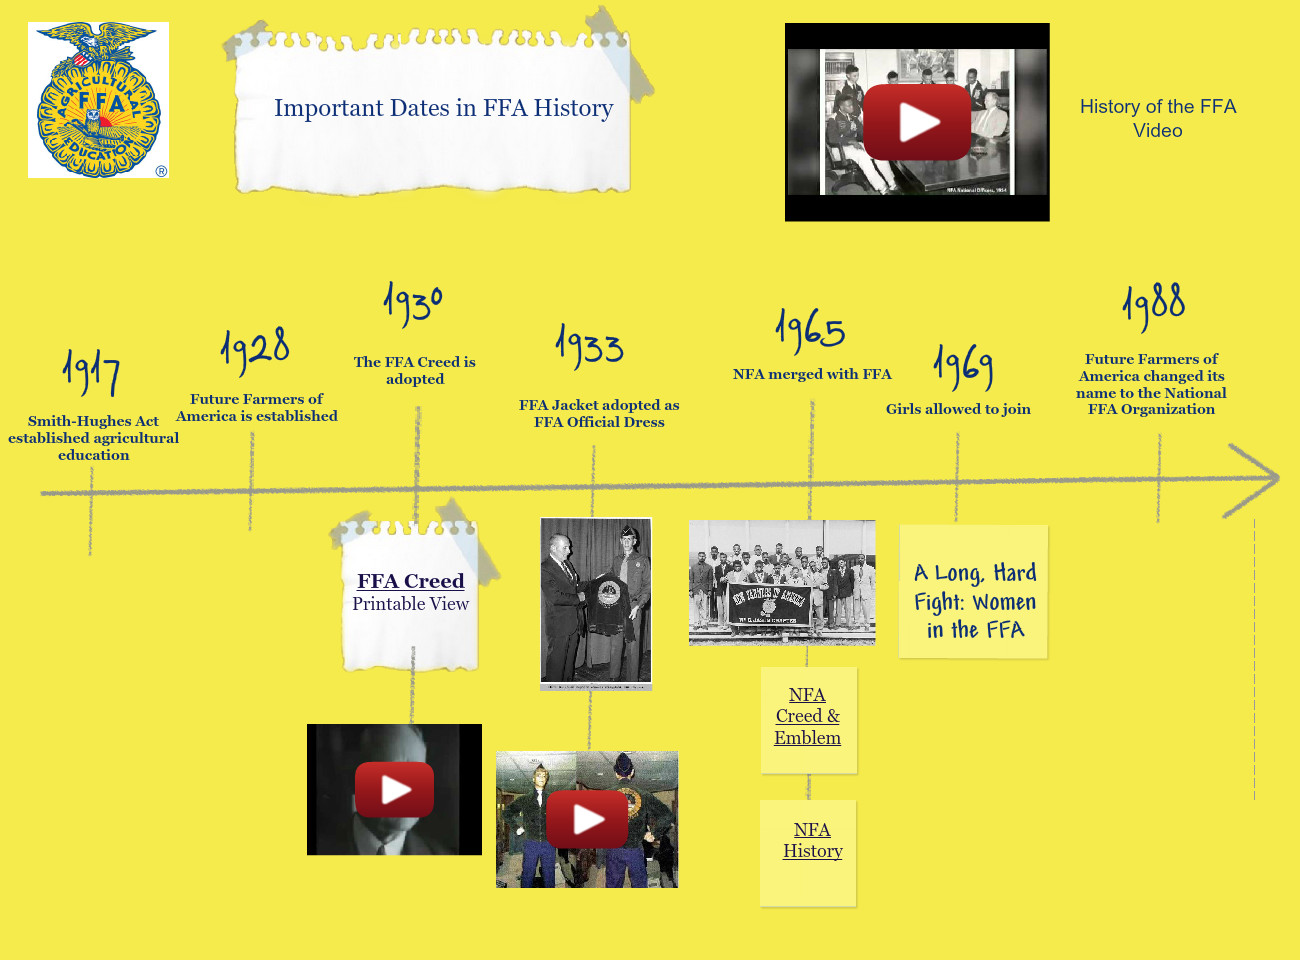 Ffa History Timeline Text Images Music Video